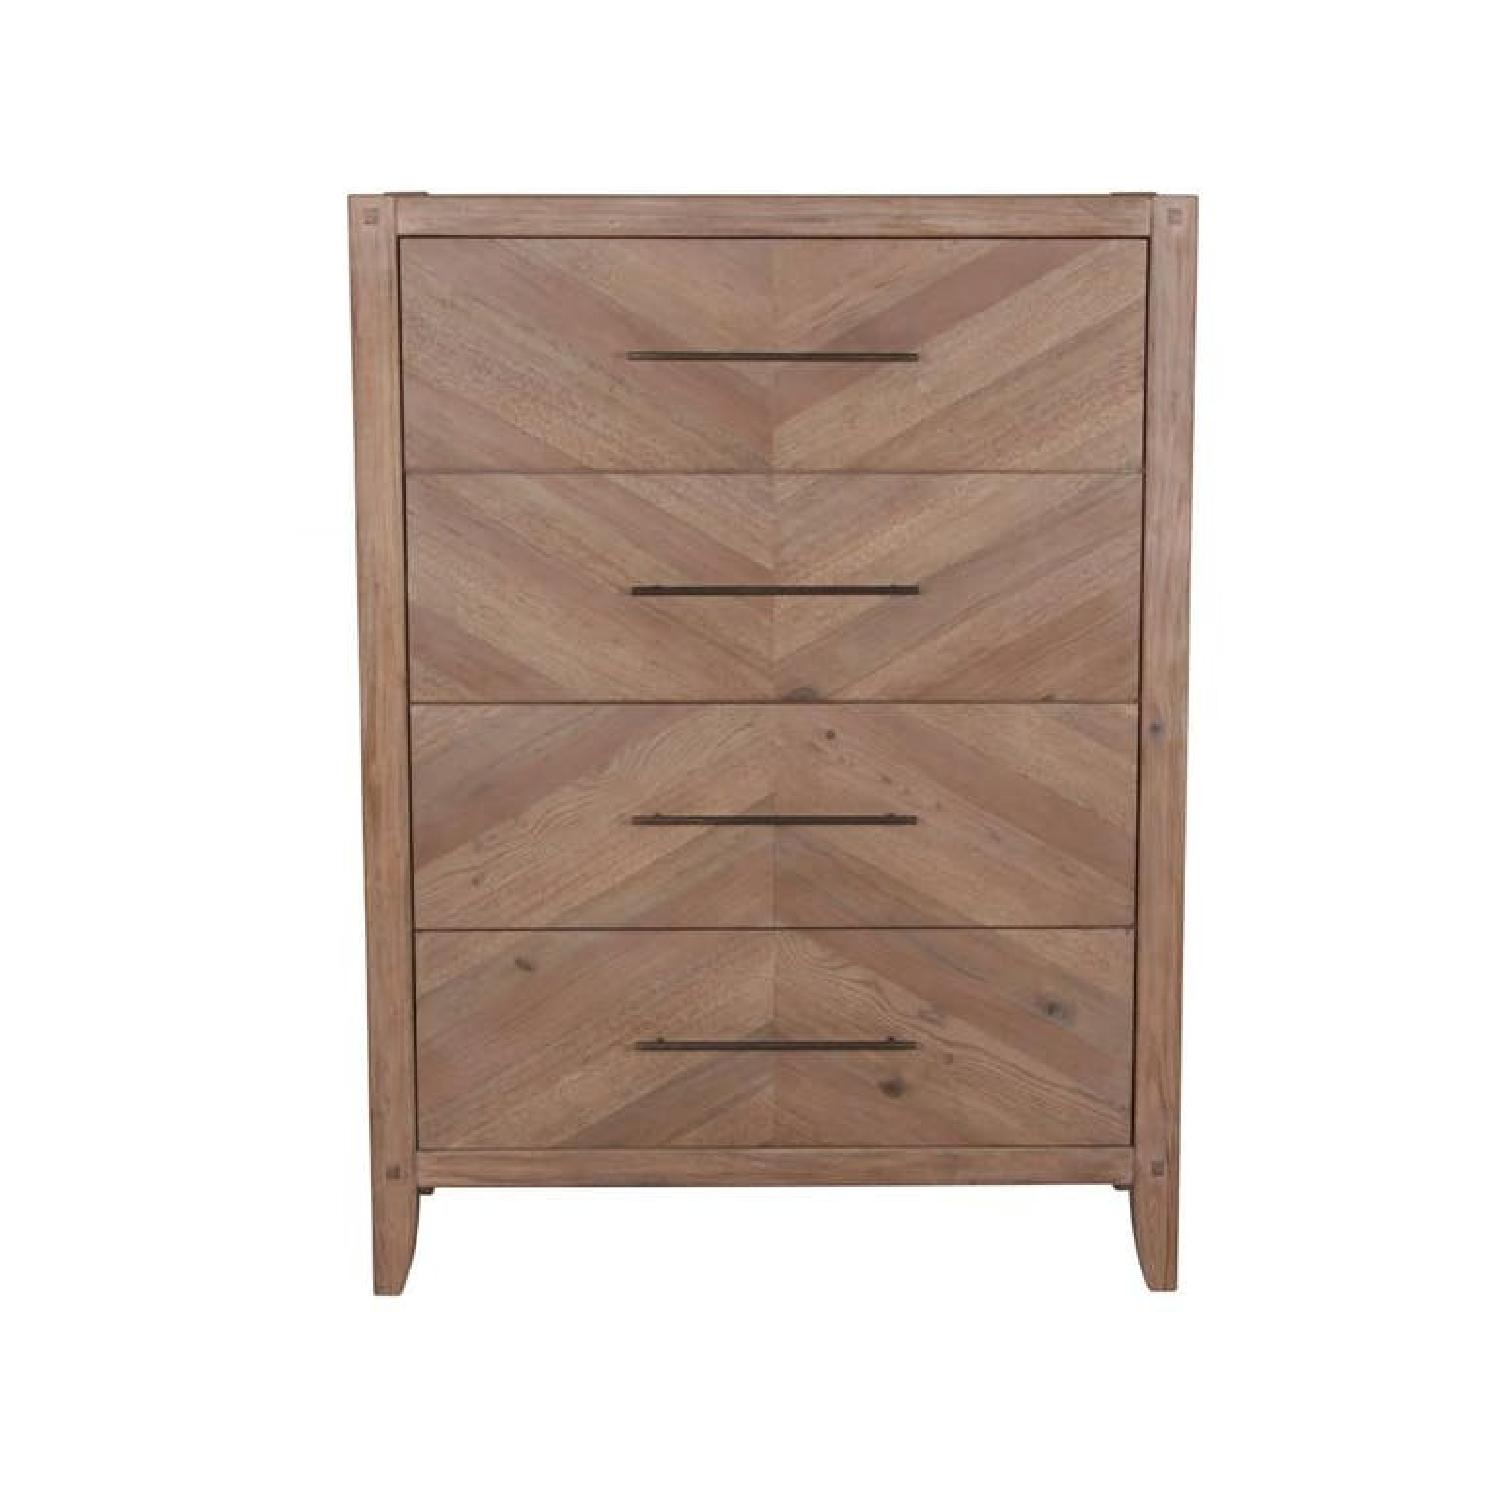 Chest in White Wash Natural Finish w/ Extra Long Handles